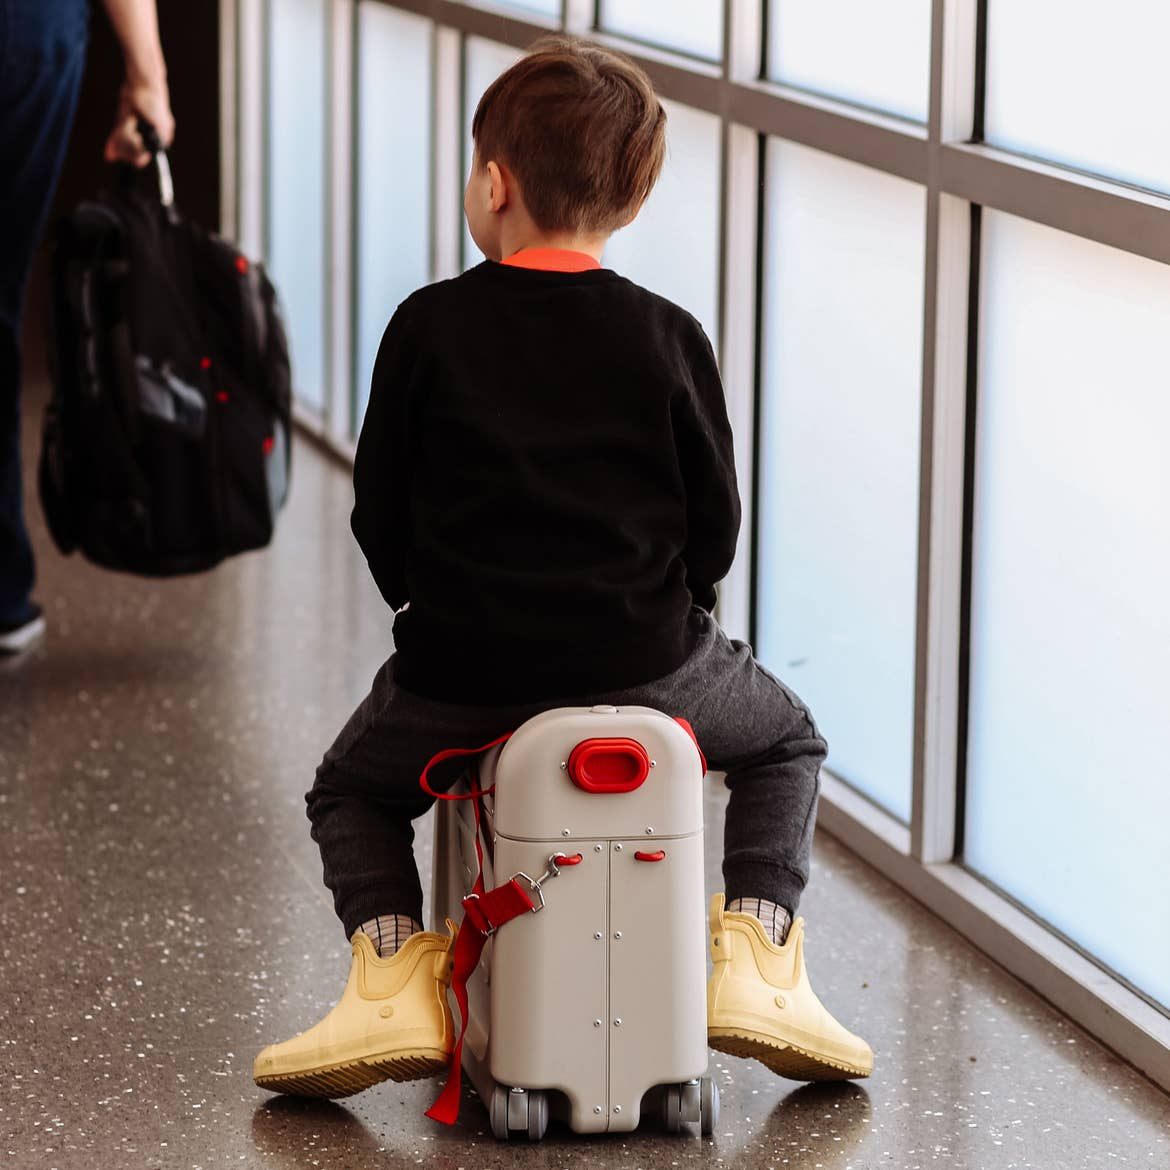 Featured contributor, Mia St. Clair's son, Grey, sits on his white wheeled suitcase in an airport terminal wearing a black shirt and yellow rain booties.